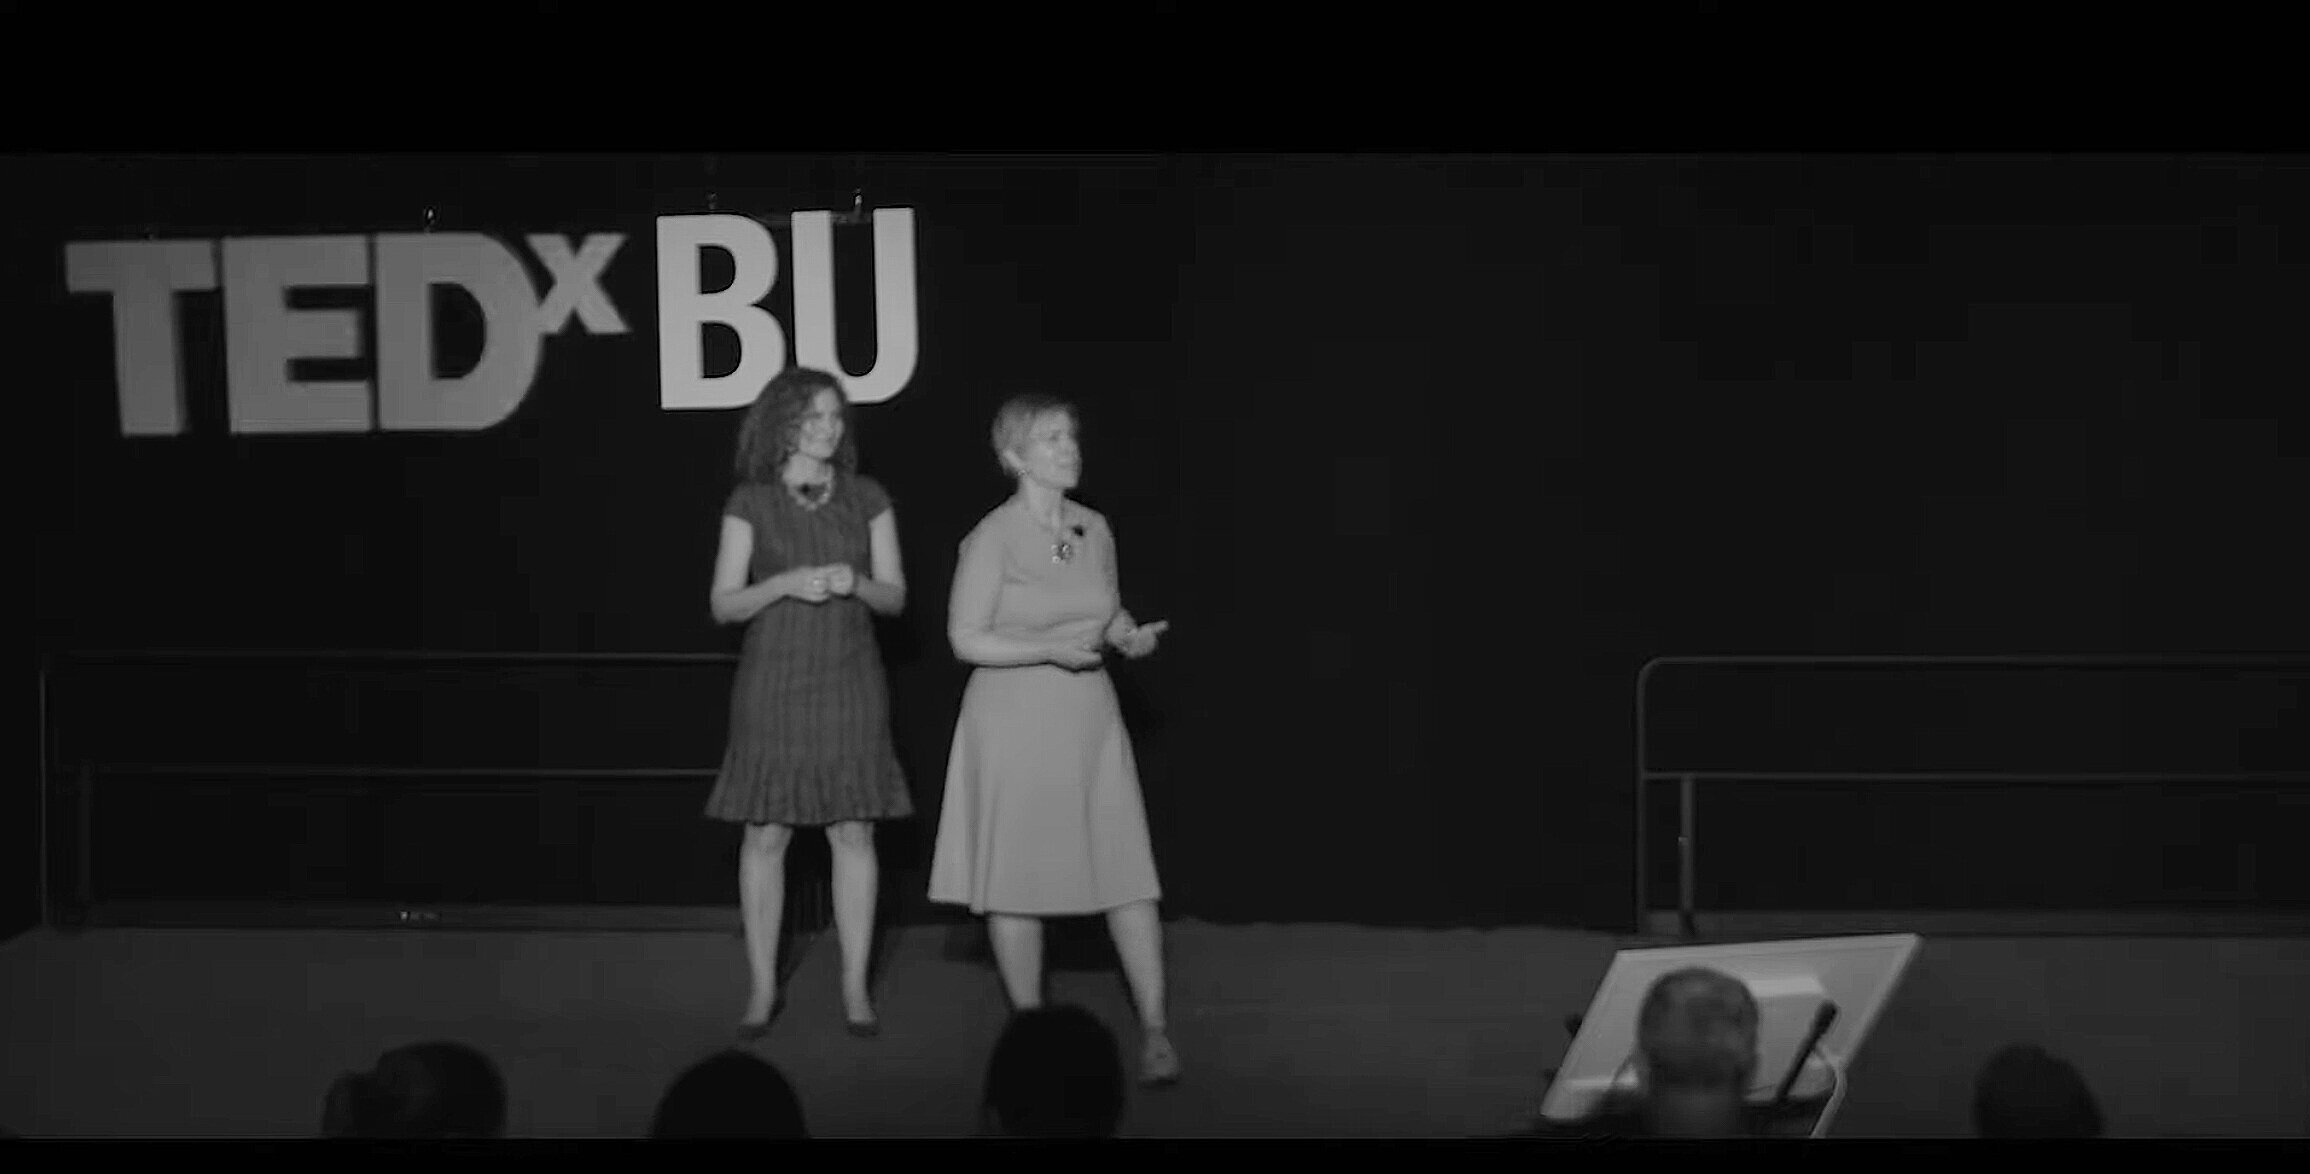 TEDx: Bringing Meaning to the Marketplace -